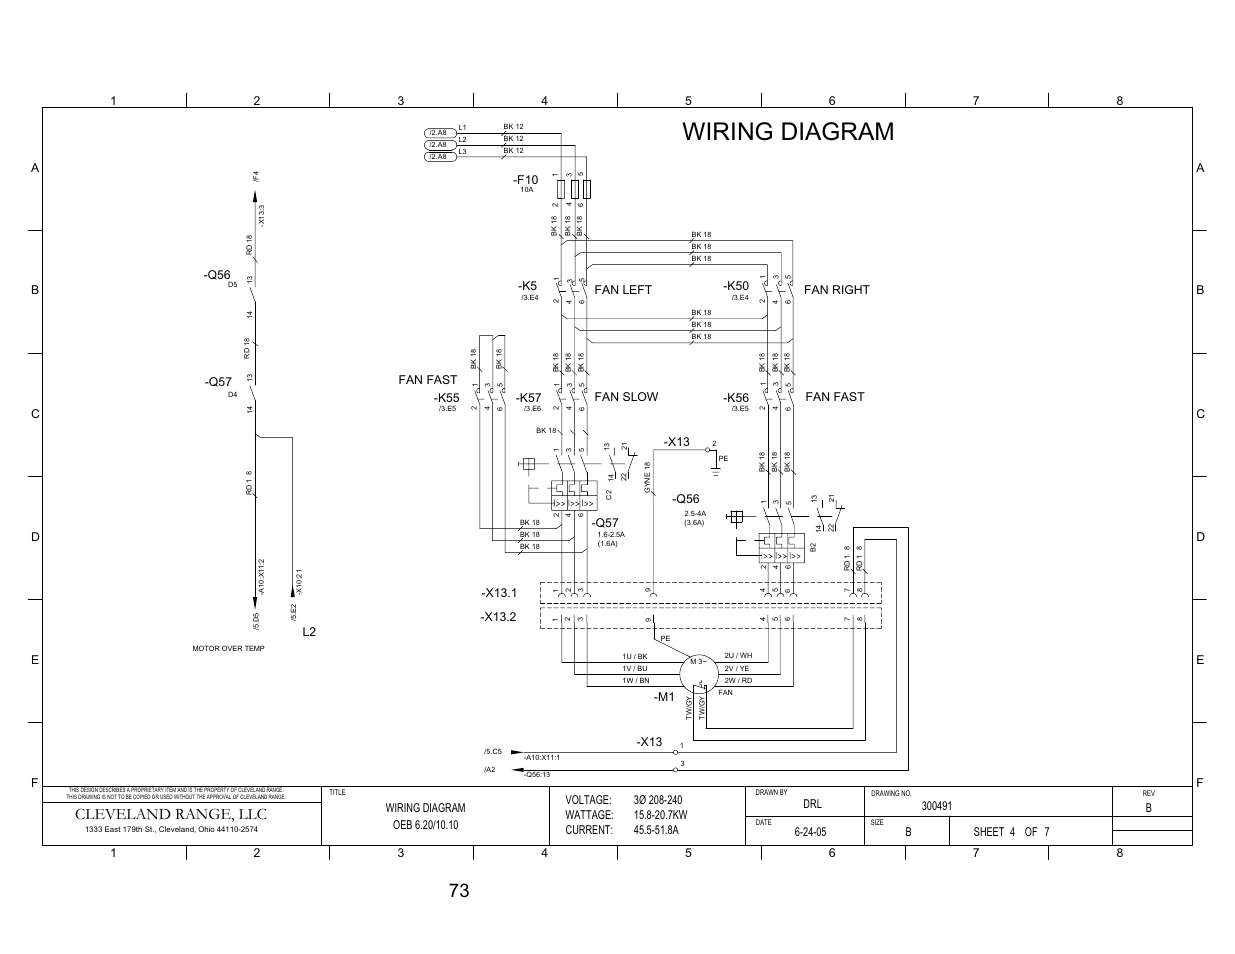 Jkp27w Ge Oven Wiring Diagram Electrical Diagrams Gas Stove For Jbp26gv3ad Data U2022 Convection